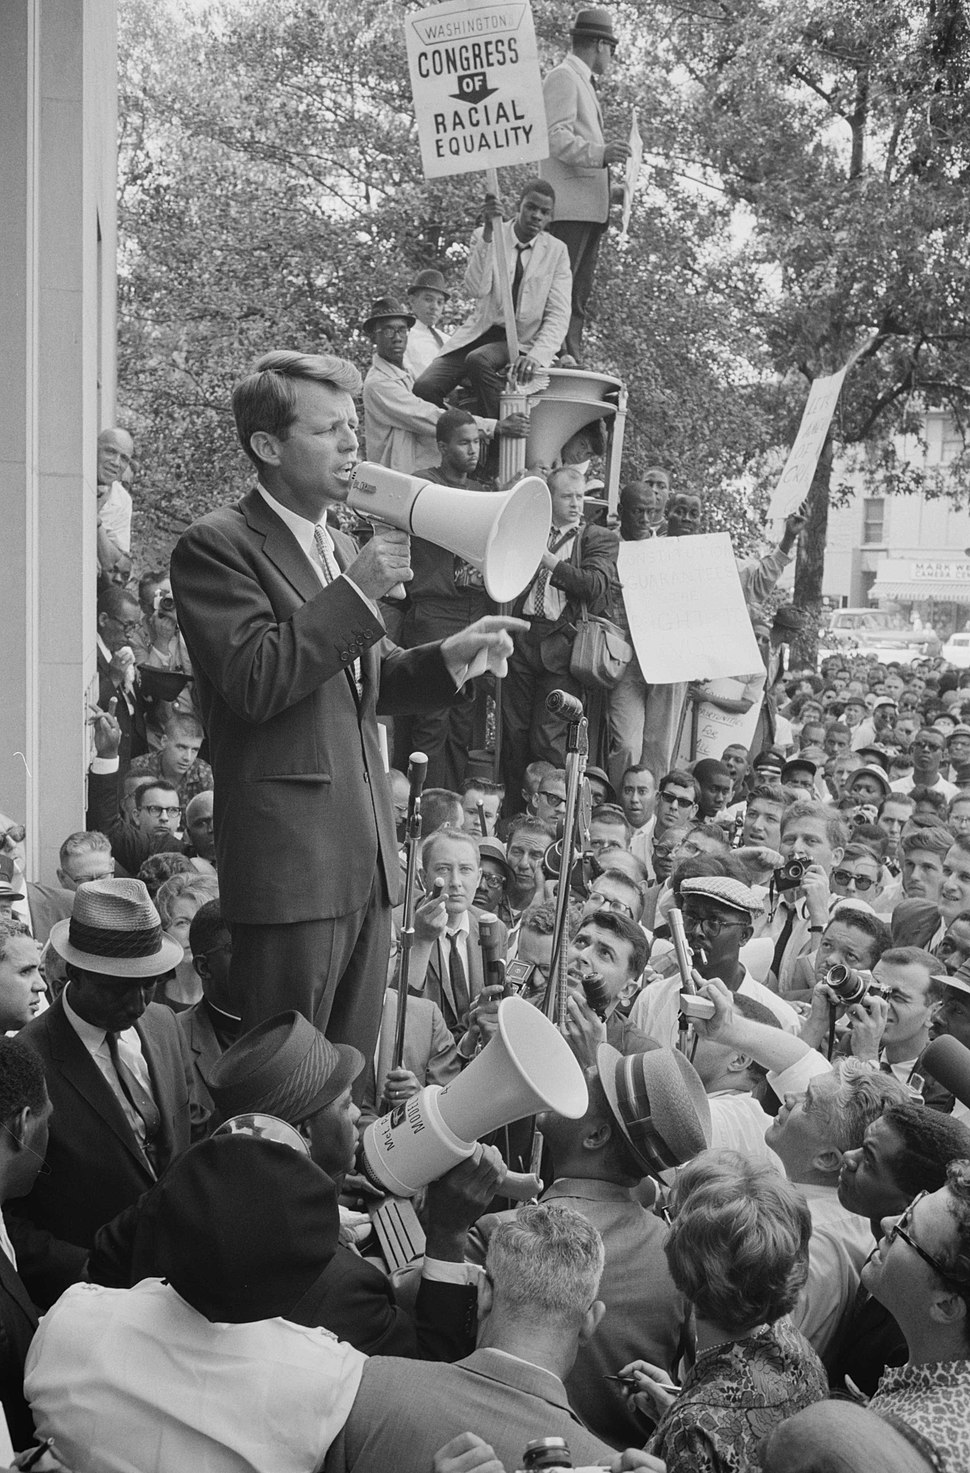 Robert Kennedy speaking before a crowd, June 14, 1963